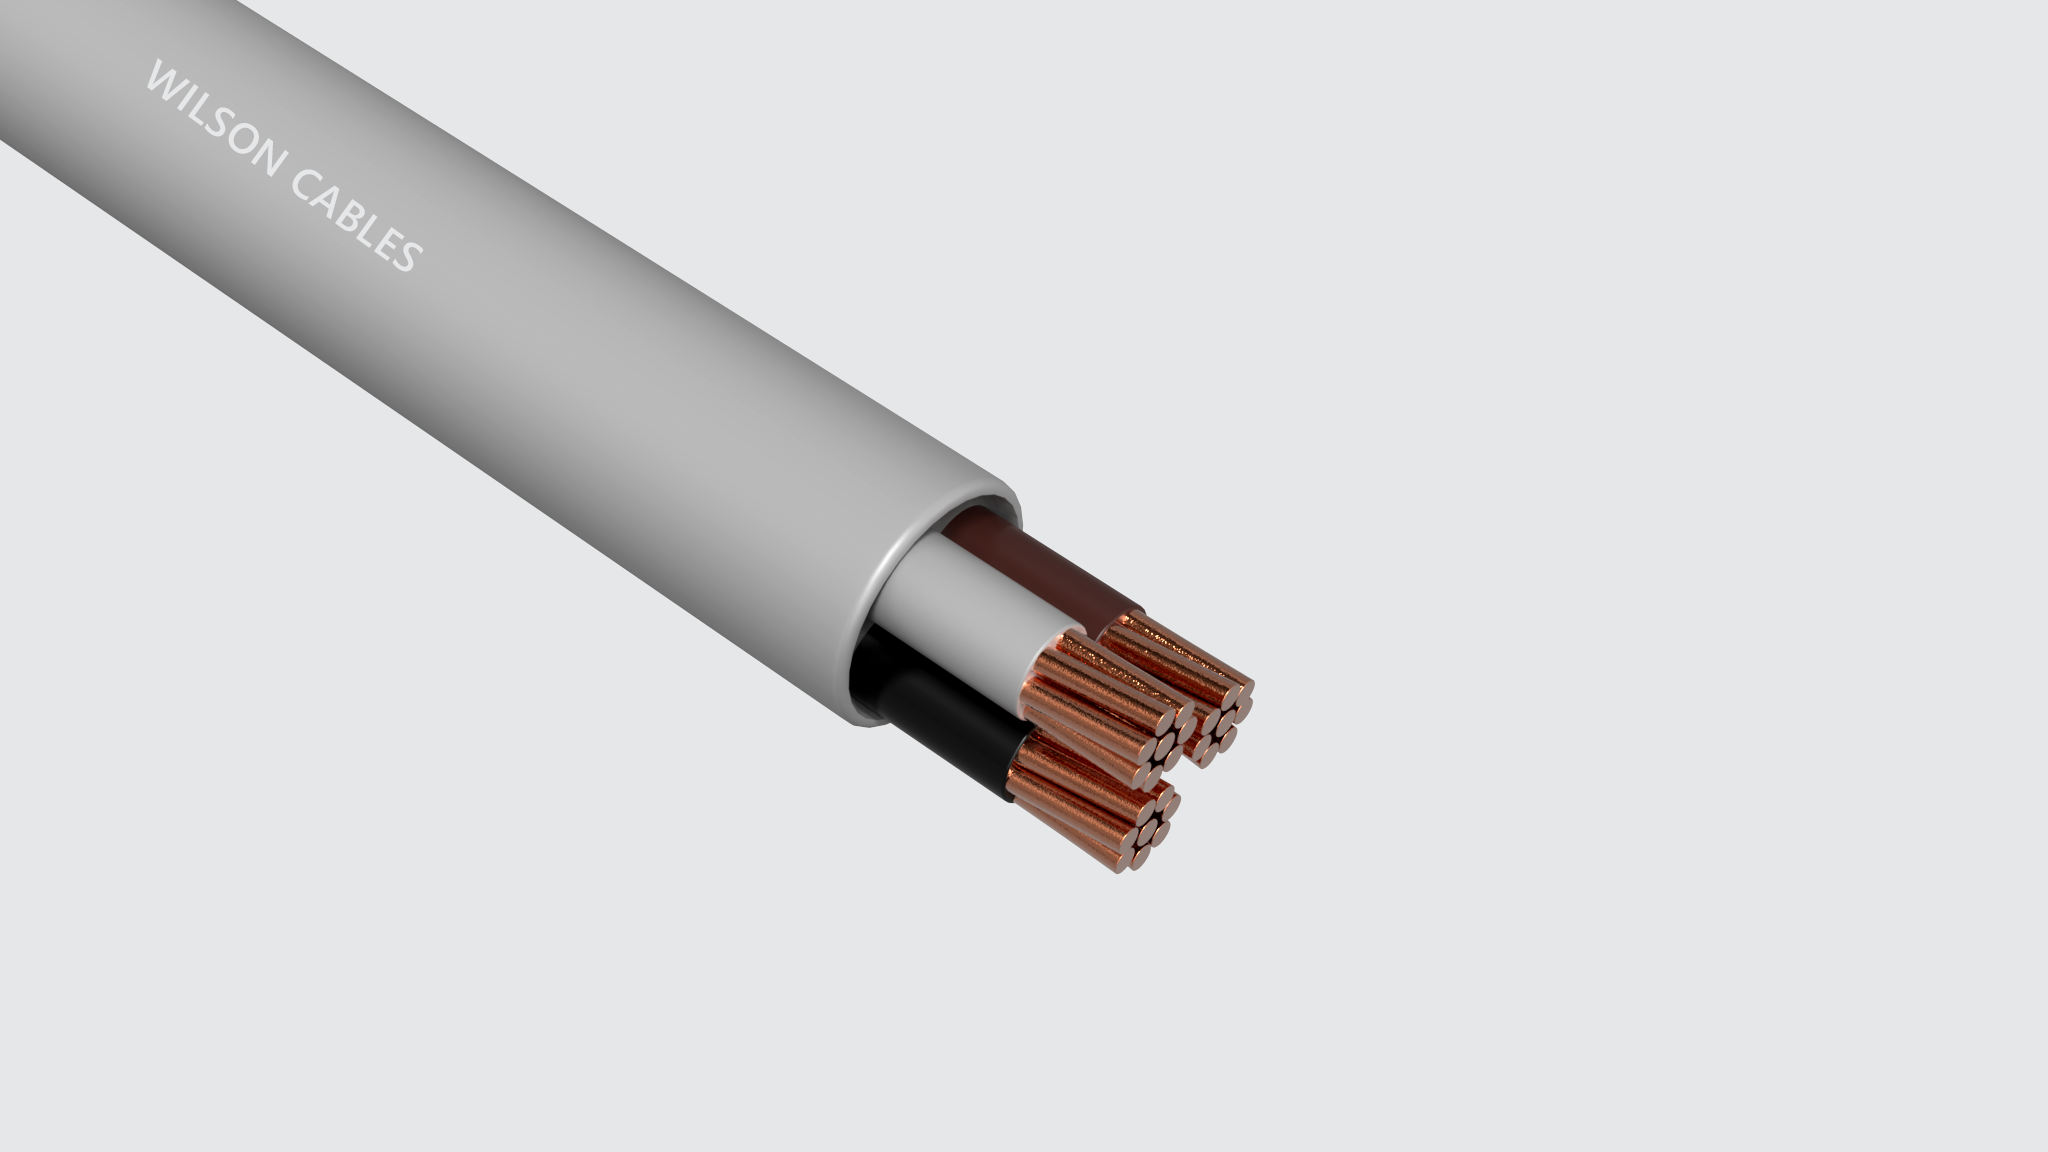 MC-210 PVC Sheathed Shipboard Power Cables